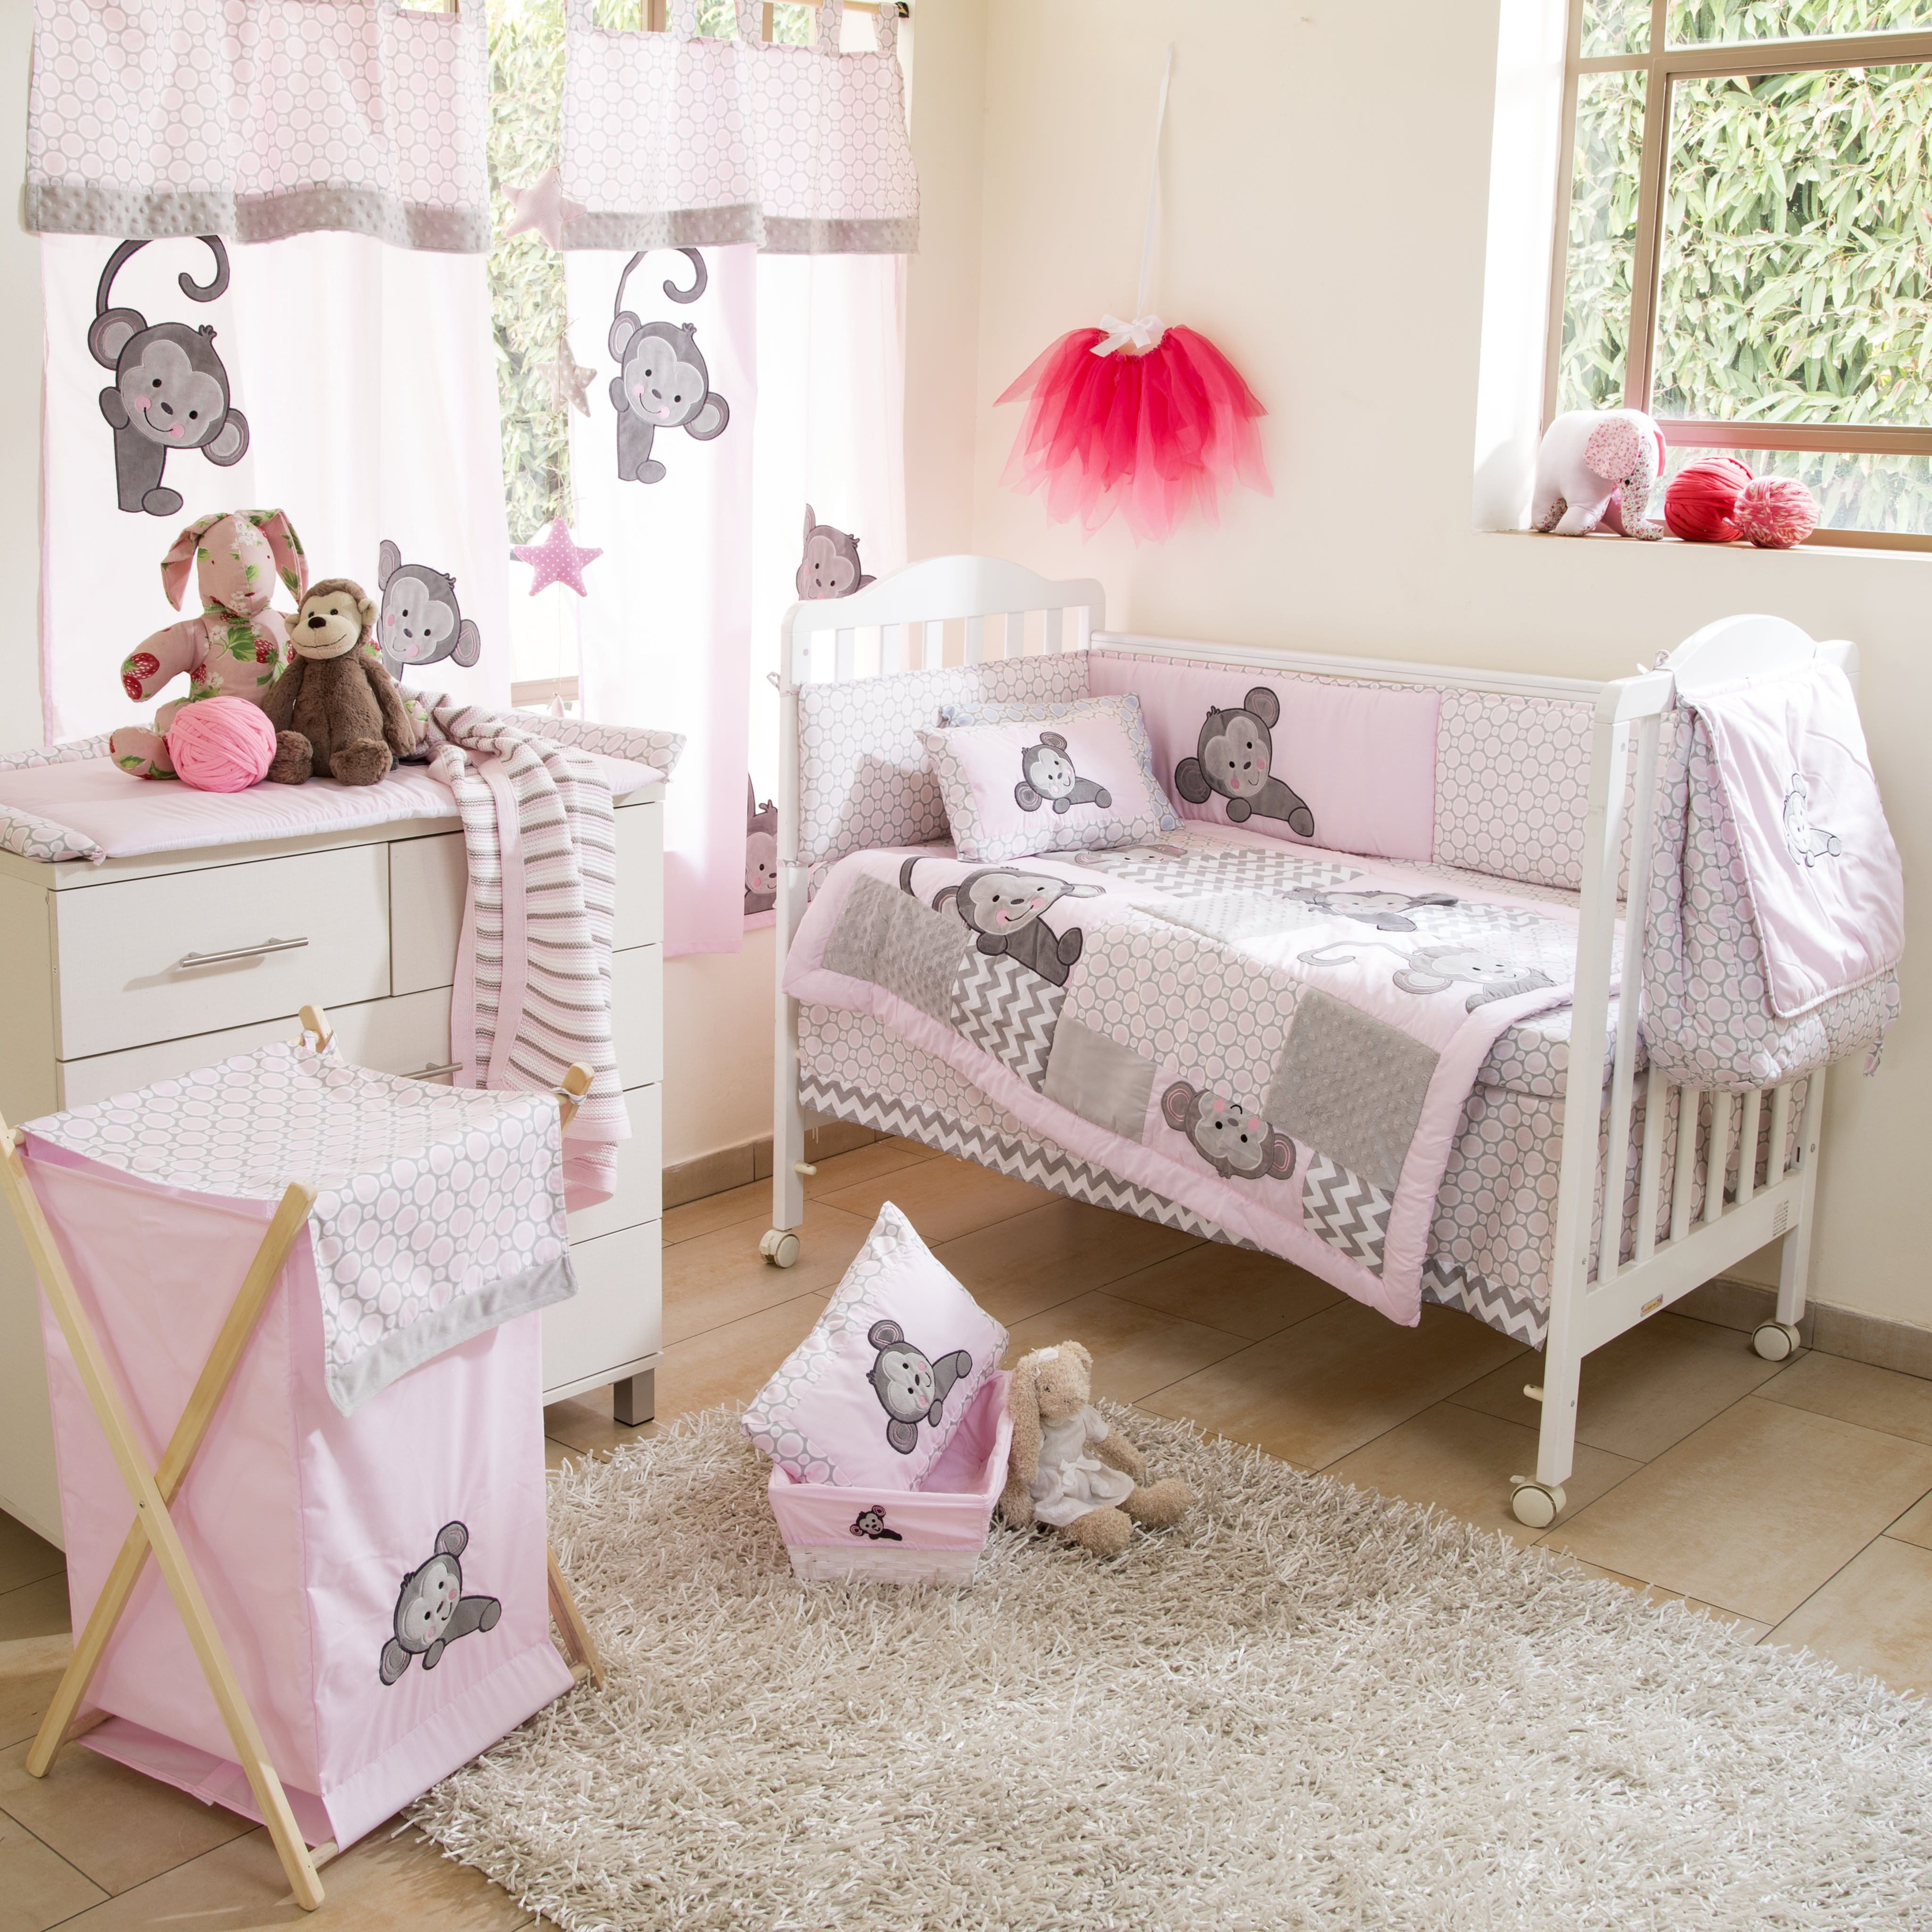 Pink Monkey Quilt. | Accessories - Quilt | Pinterest | Bed sets ... : crib comforters and quilts - Adamdwight.com